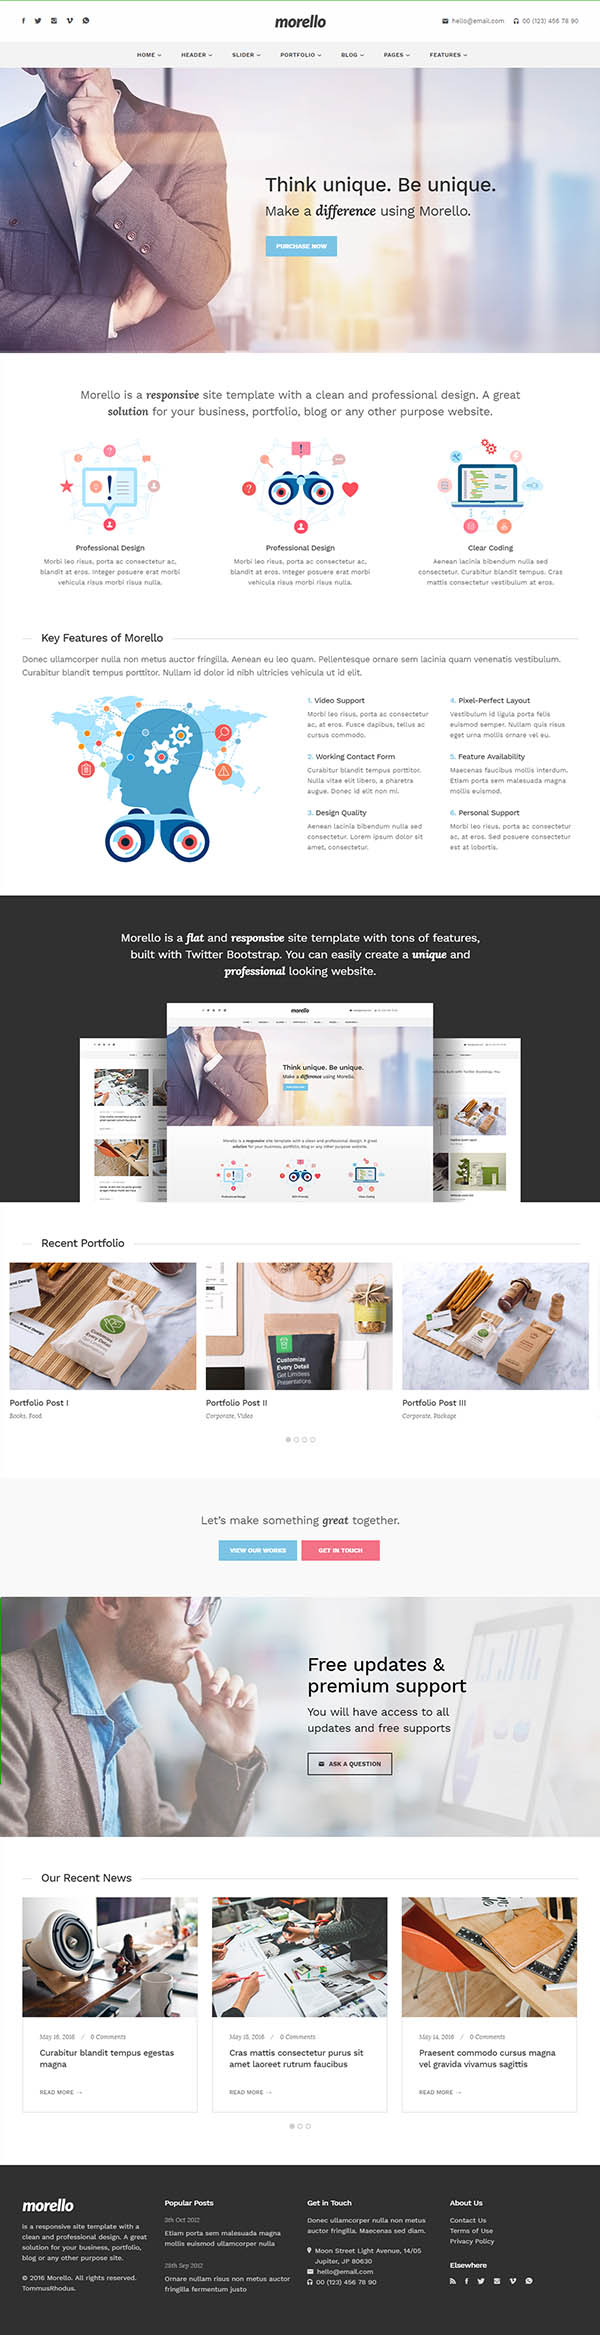 Morello : Multipurpose Business WordPress Theme